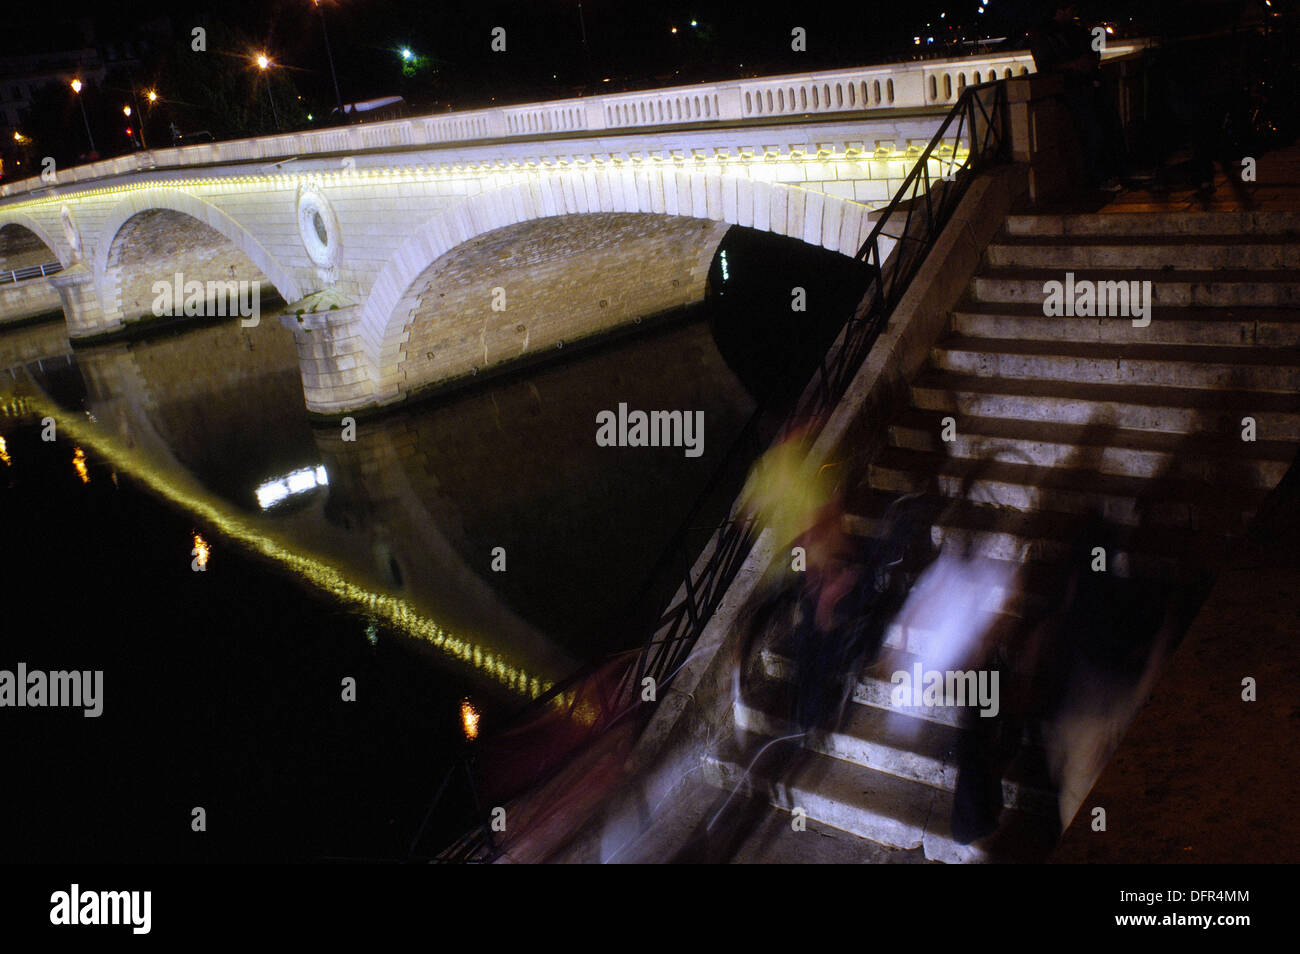 People on steps near Pont Louis-Philippe at night. Paris. France - Stock Image